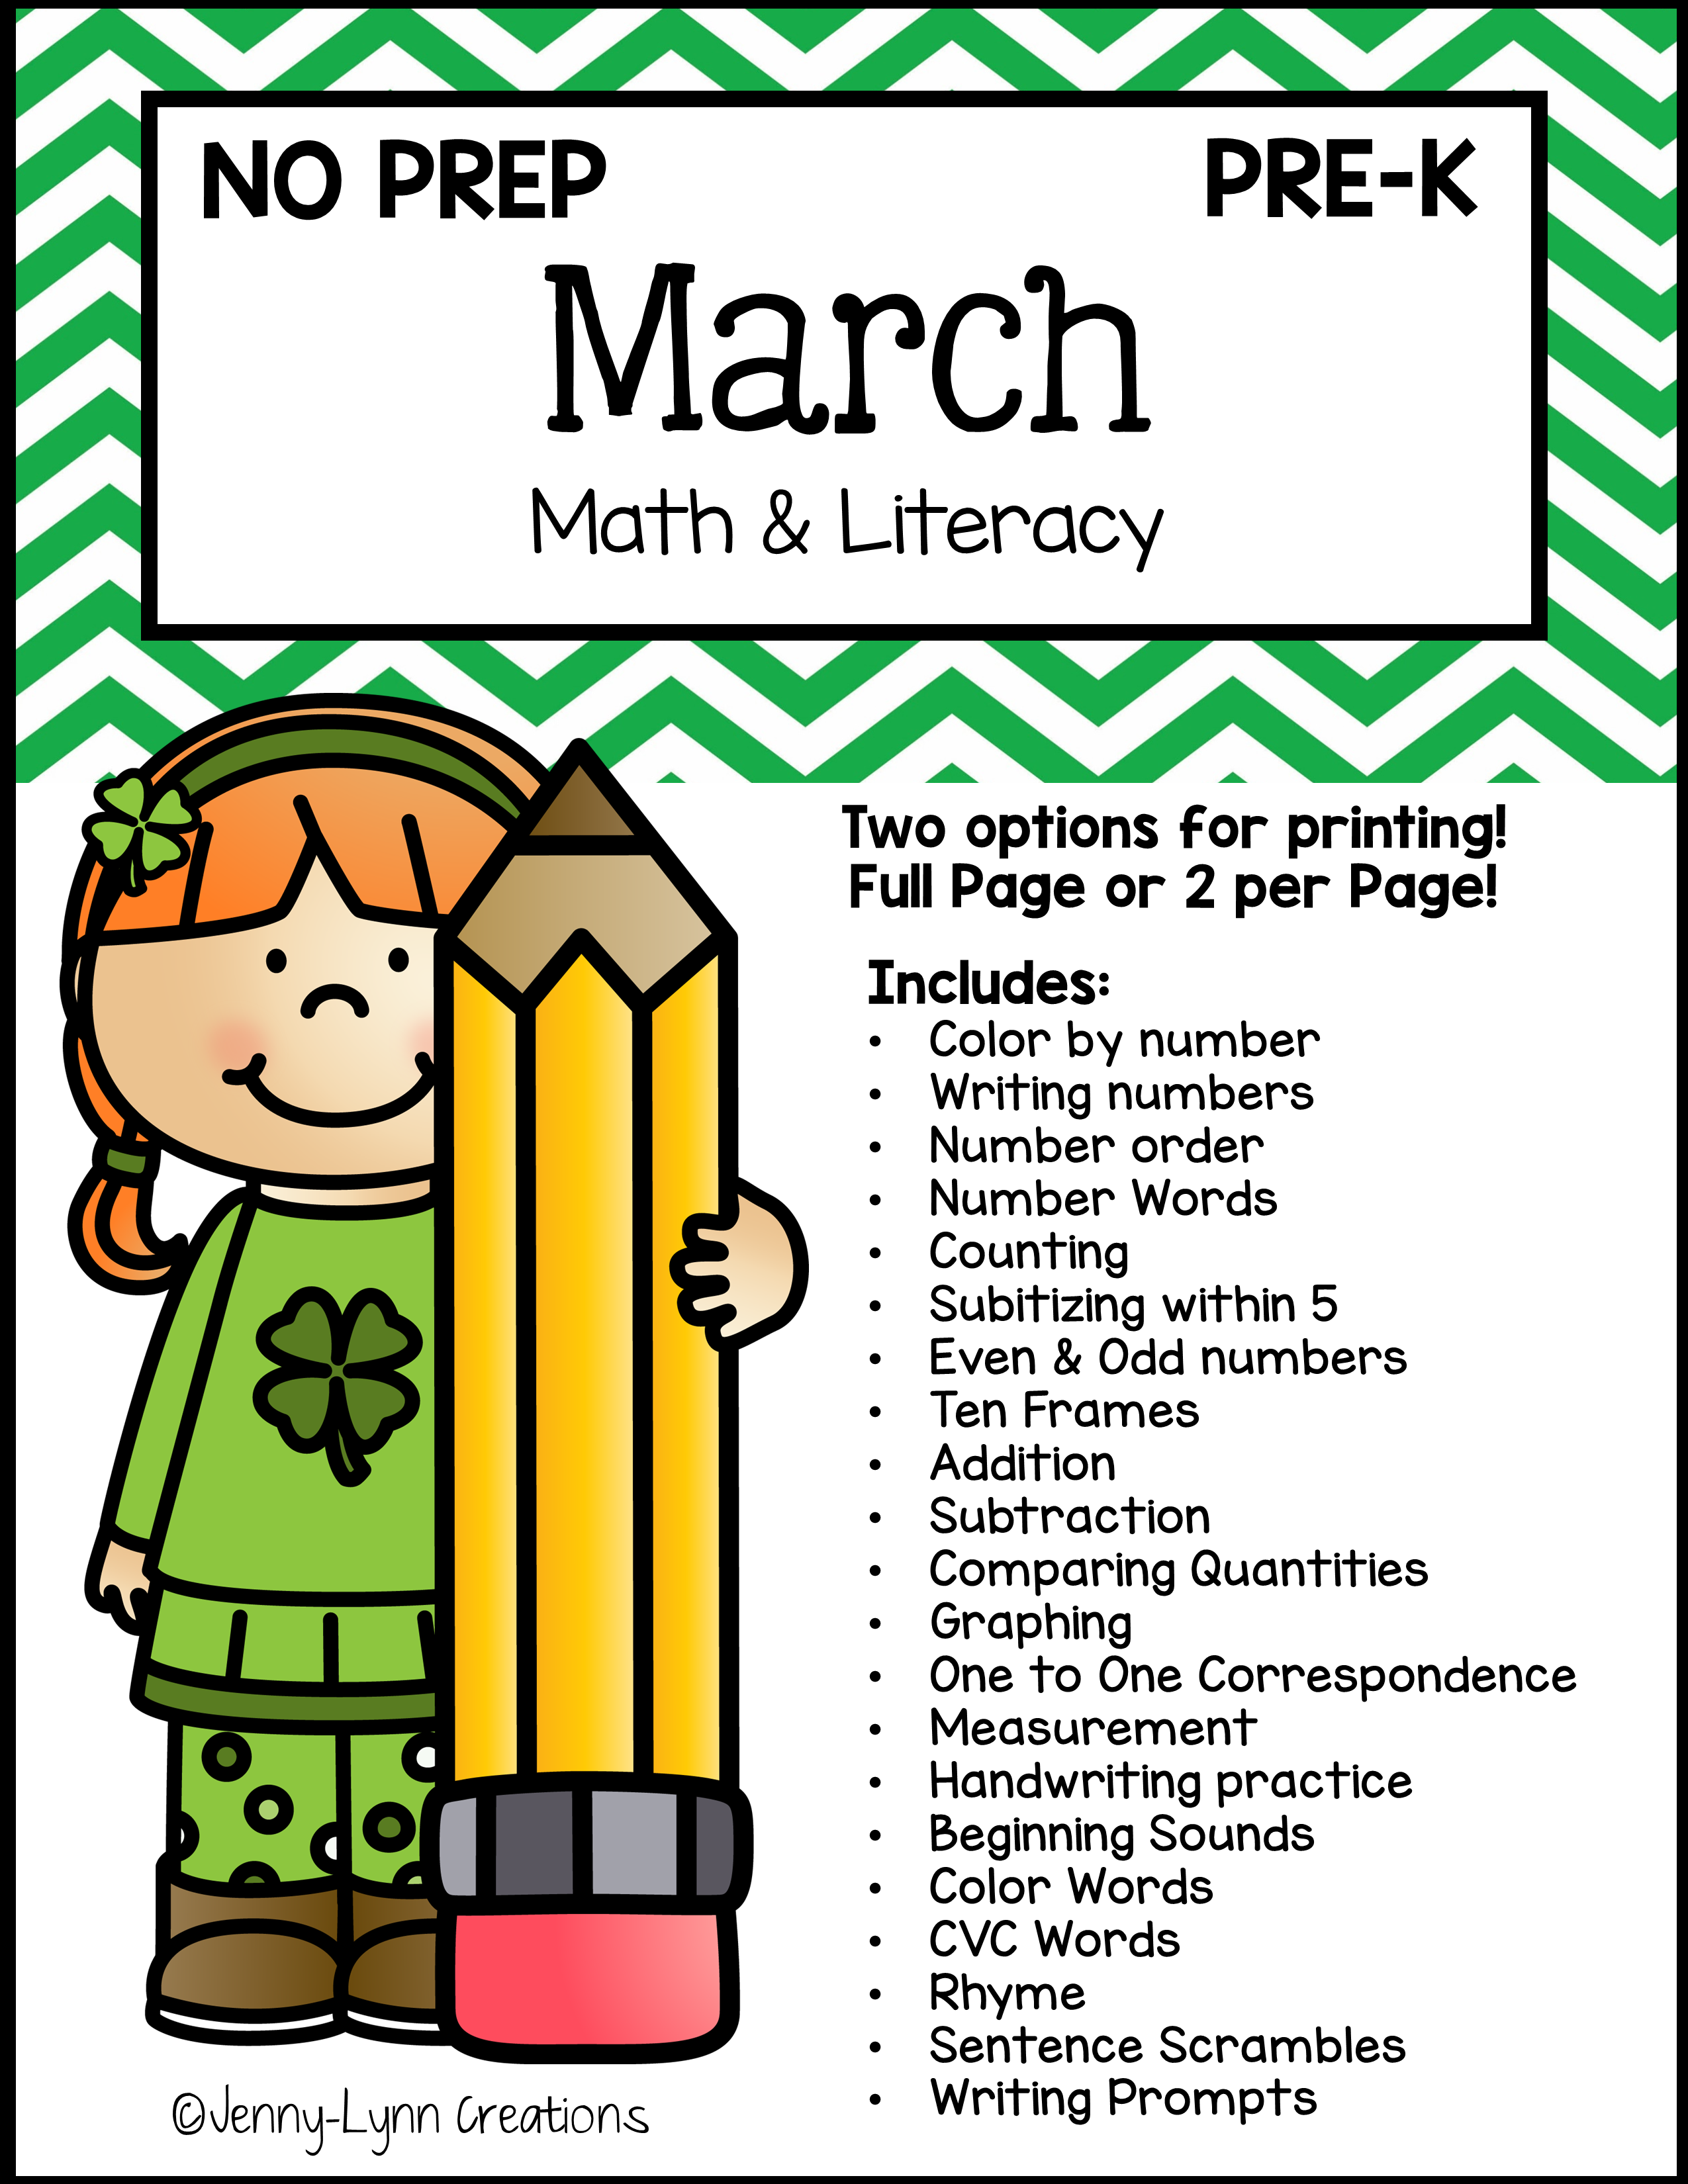 Downloadable Math and Literacy Teaching Resources